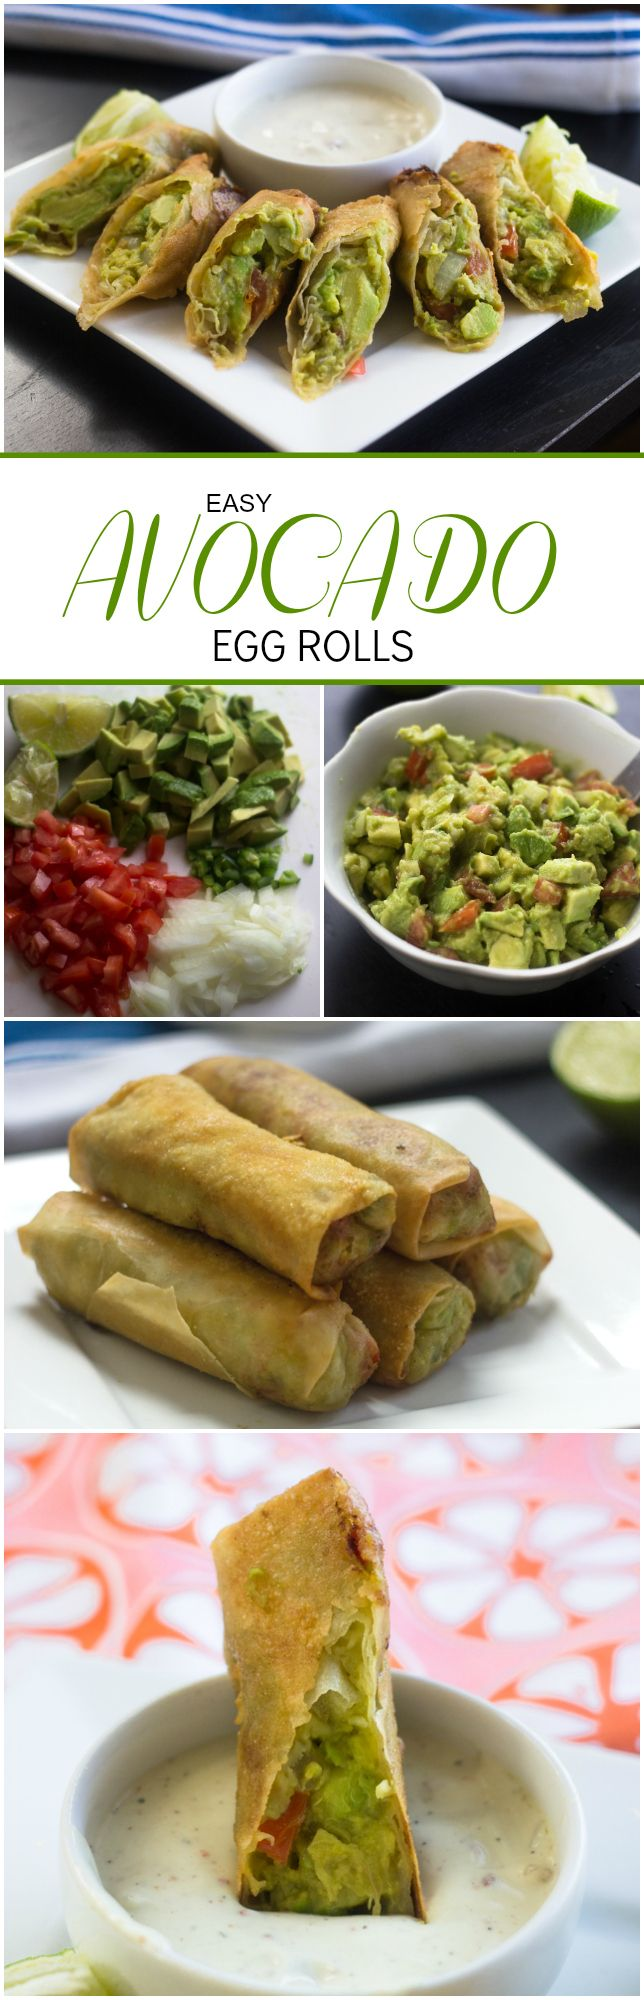 Easy Avocado Egg Rolls just like the cheesecake factory except 1000x better!! Sponsored #LoveOneToday hassavocados